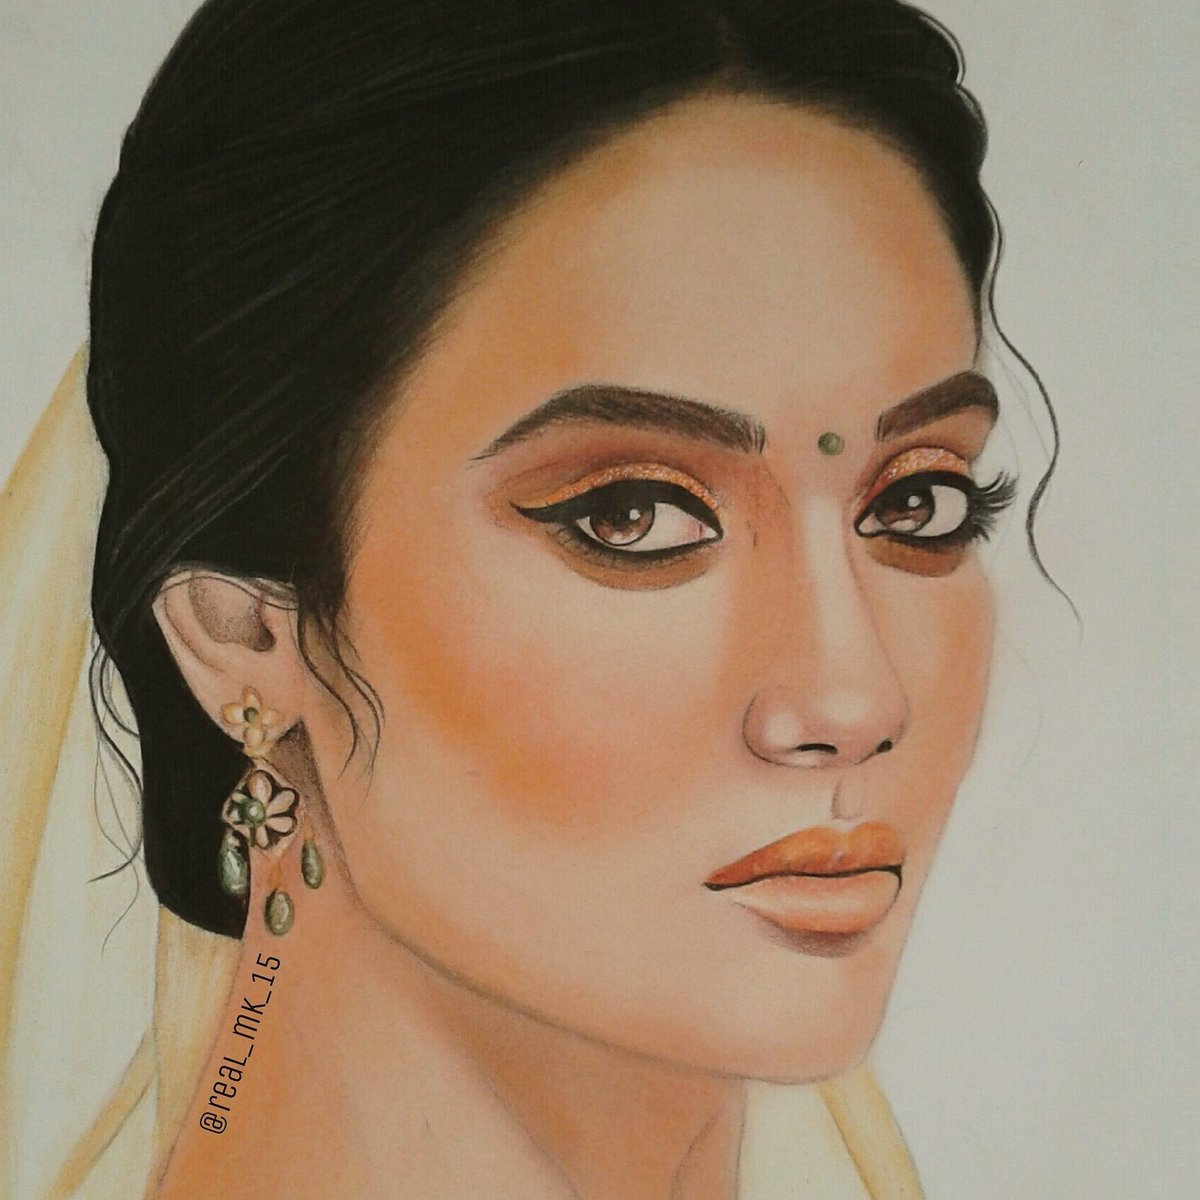 My #painting of #SurbhiJyotipic.twitter.com/6QMrlOiEY7